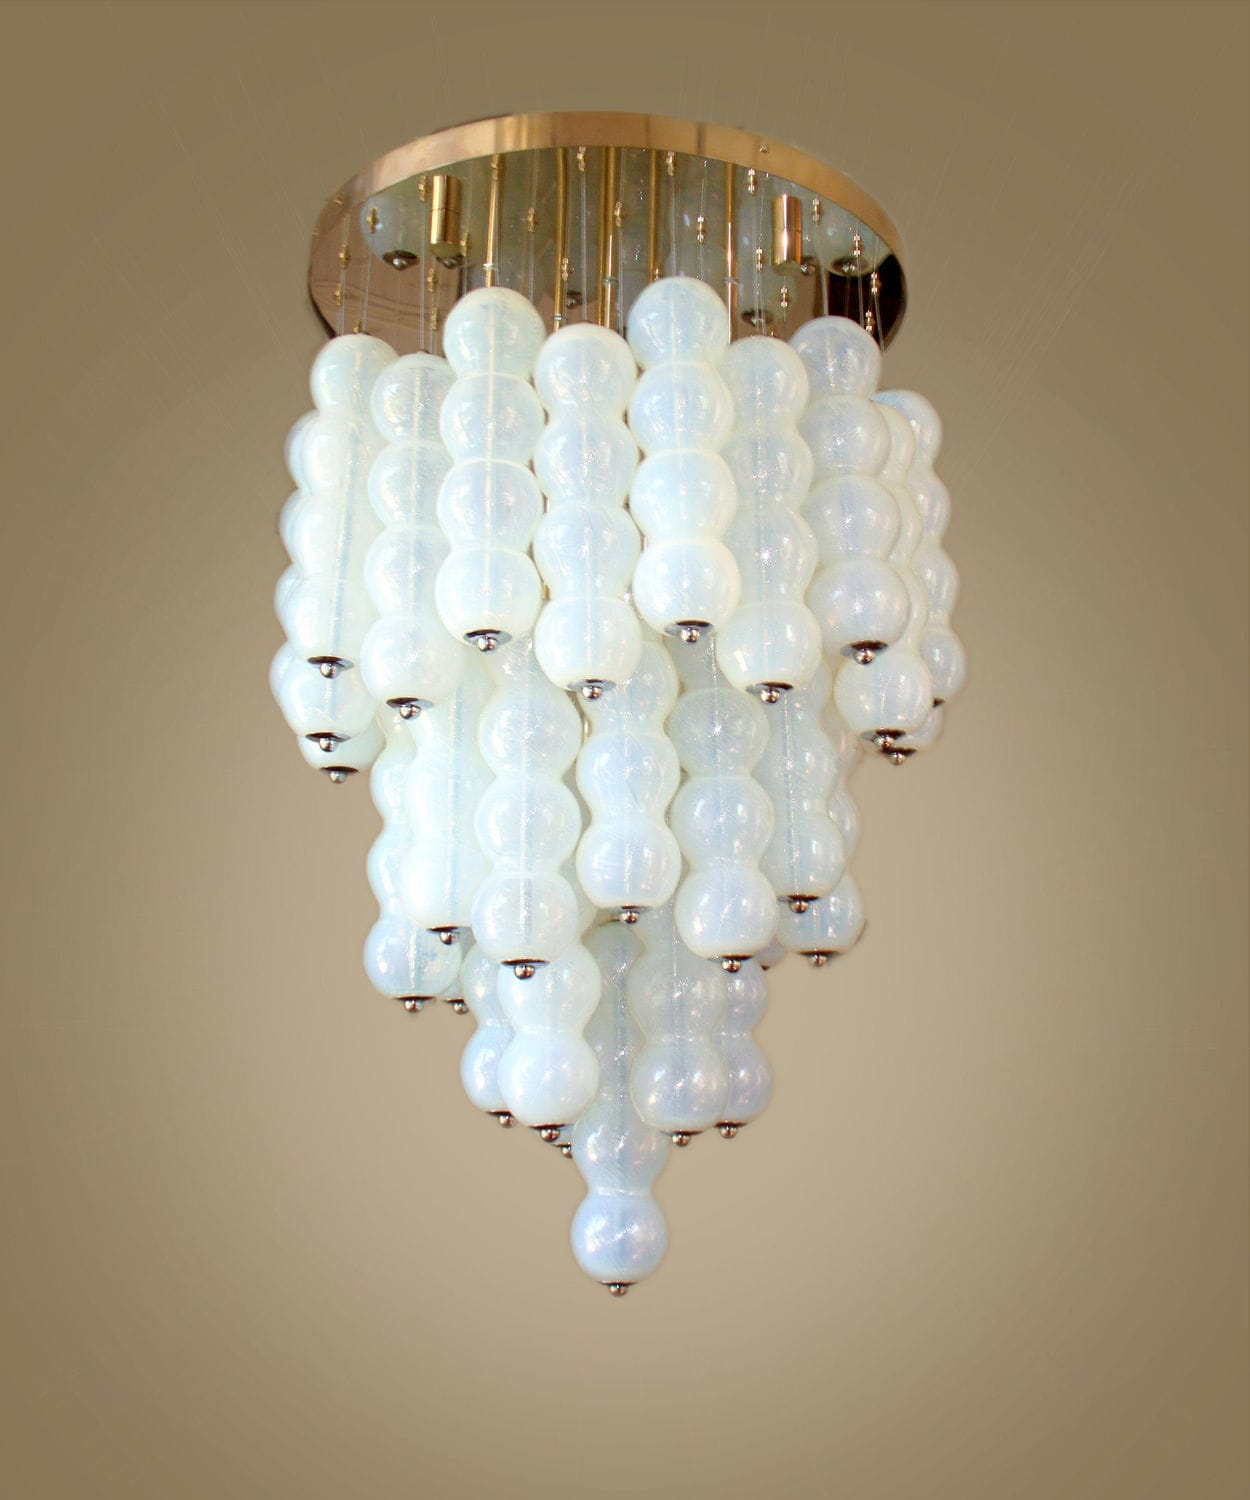 murano-glass-ceiling-light-photo-9